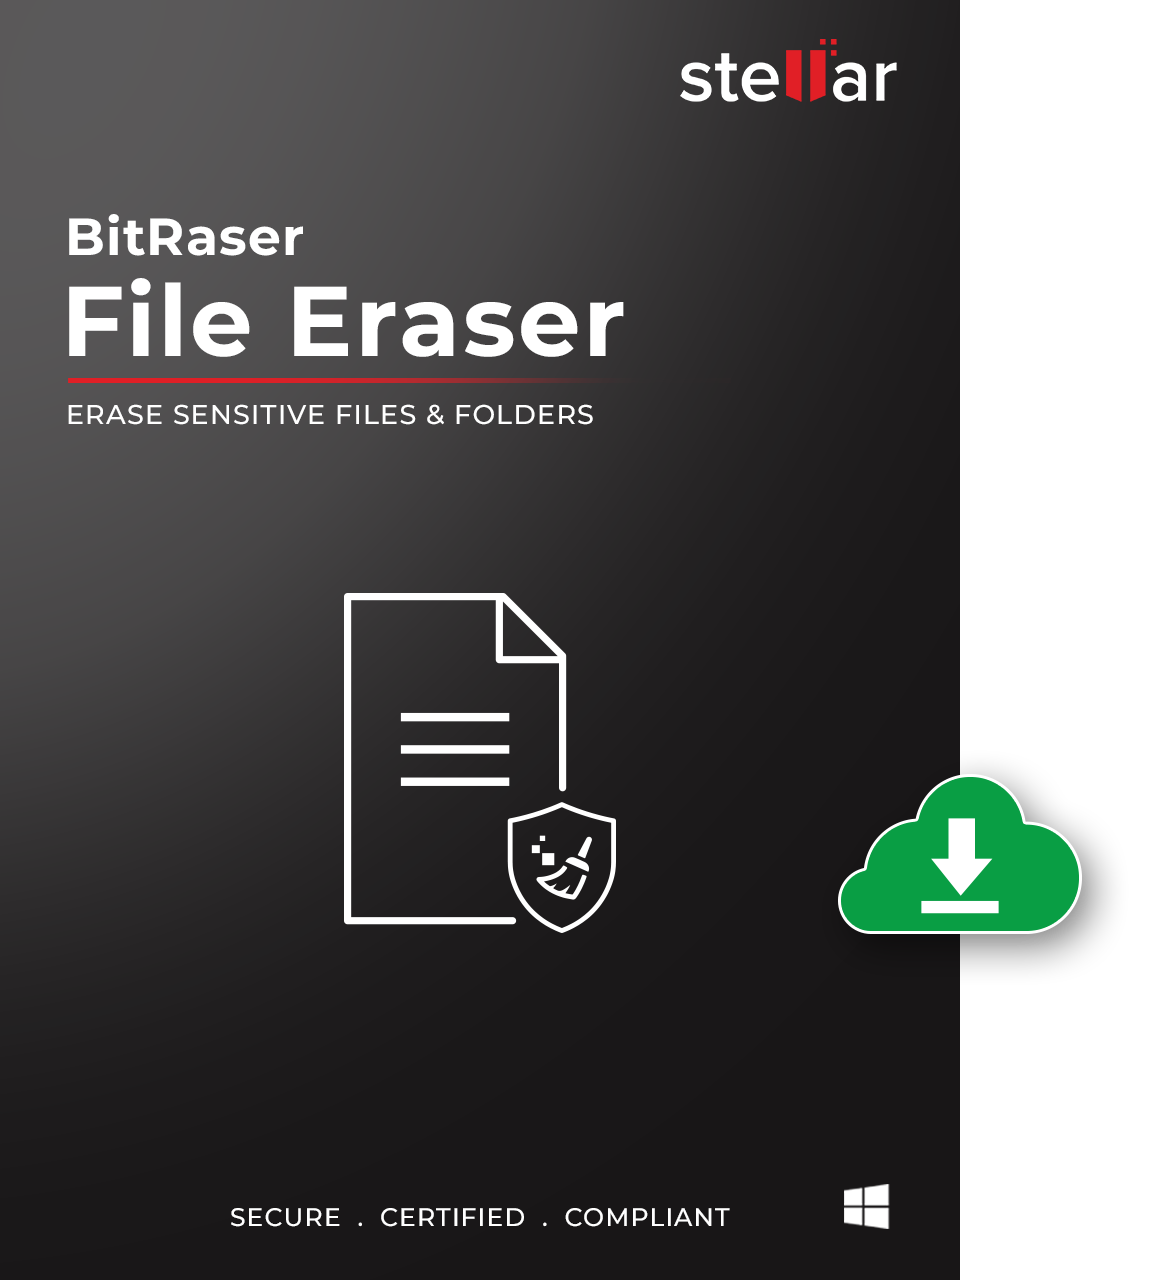 File Eraser Software to Wipe & Recycle Hard Drive